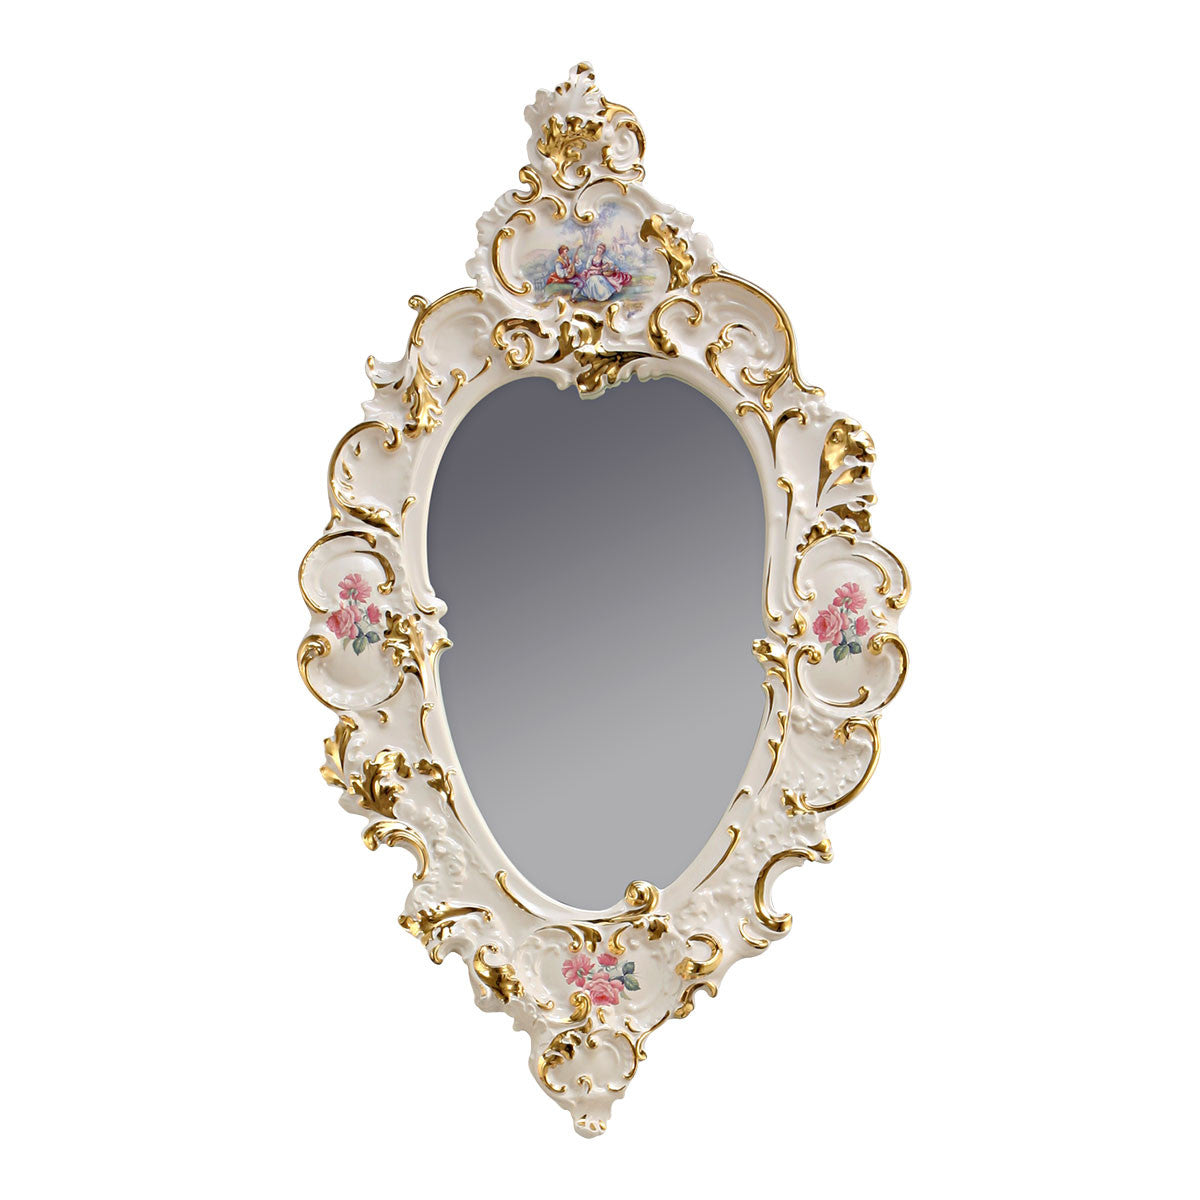 ceramic porcelain baroque mirror finished in pure gold baroque design handmade in Italy